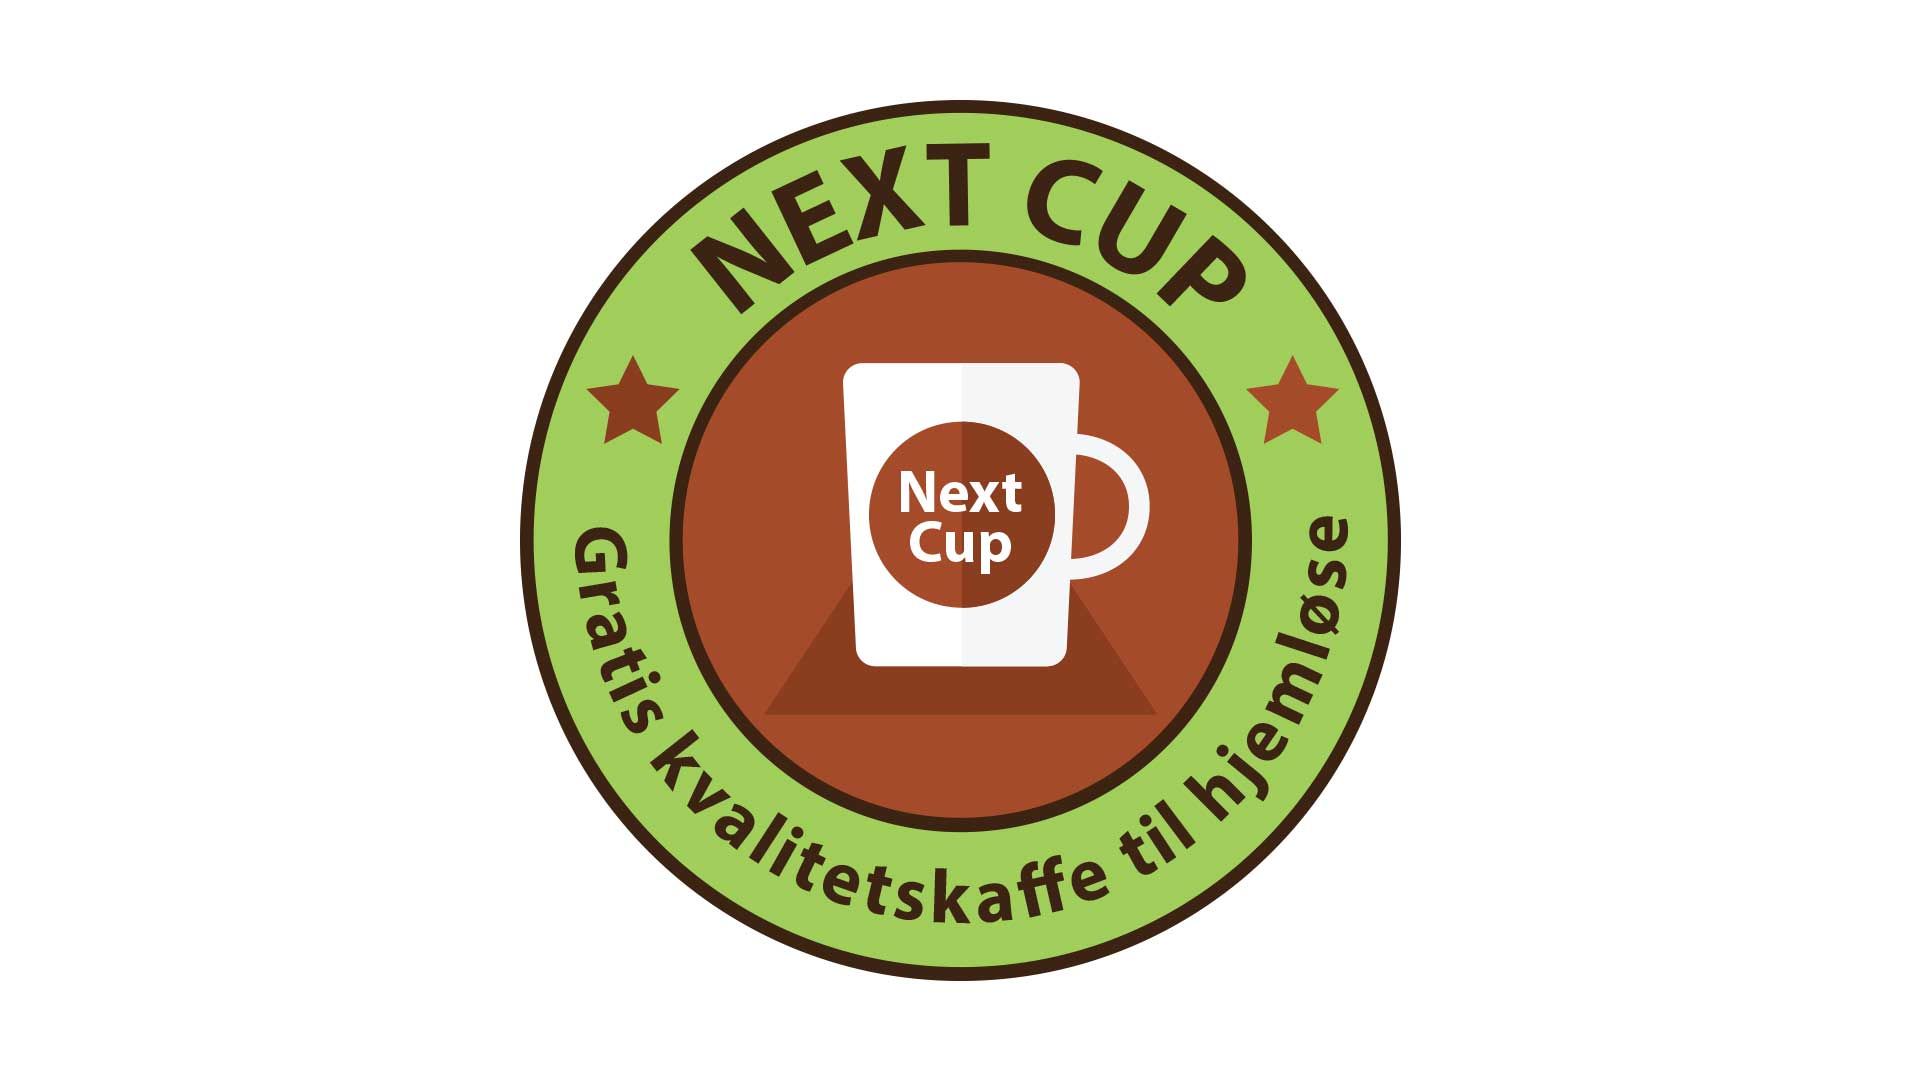 Next Cup